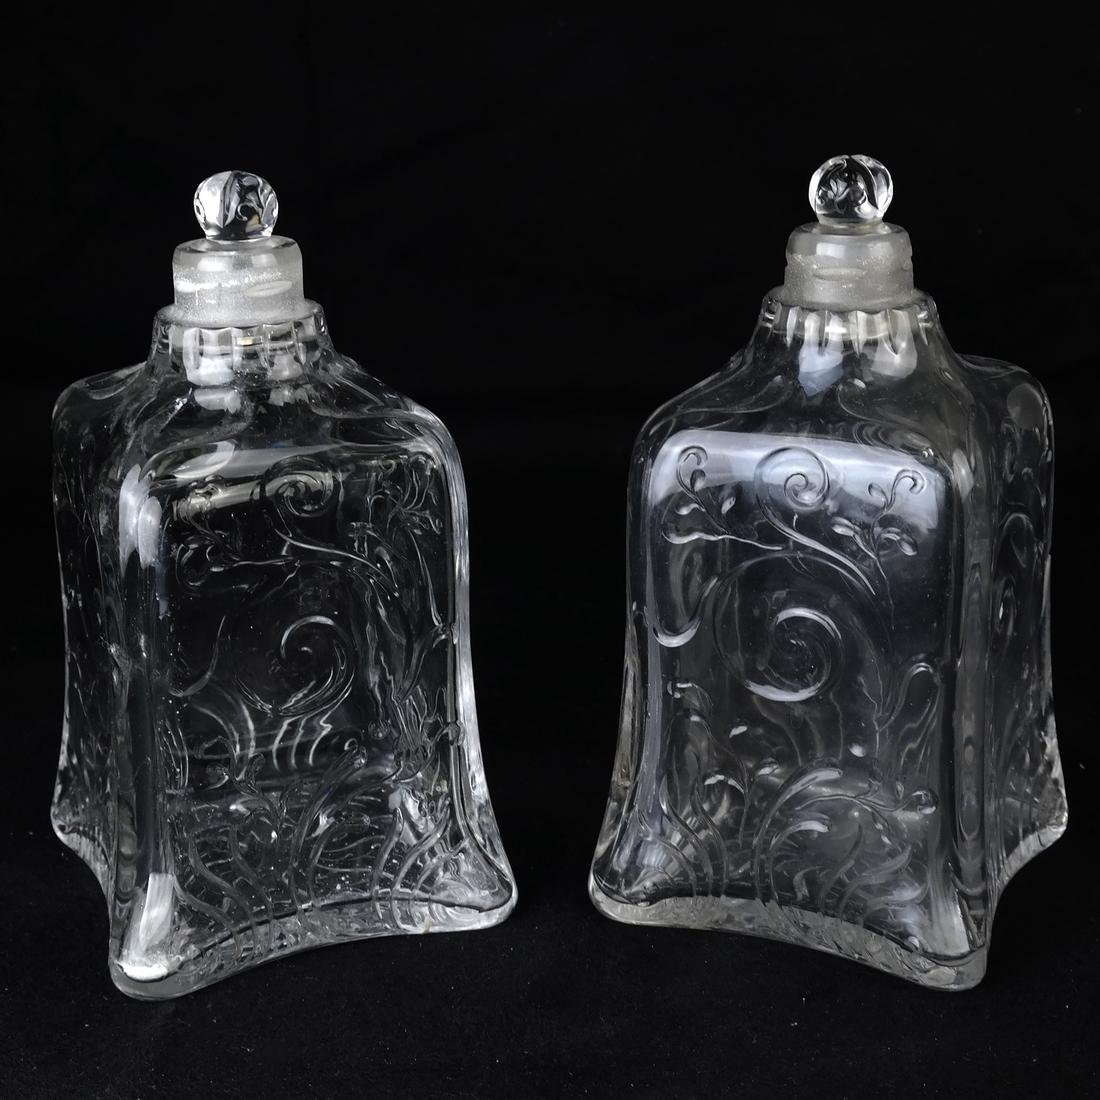 Pair of Engraved Glass Decanters